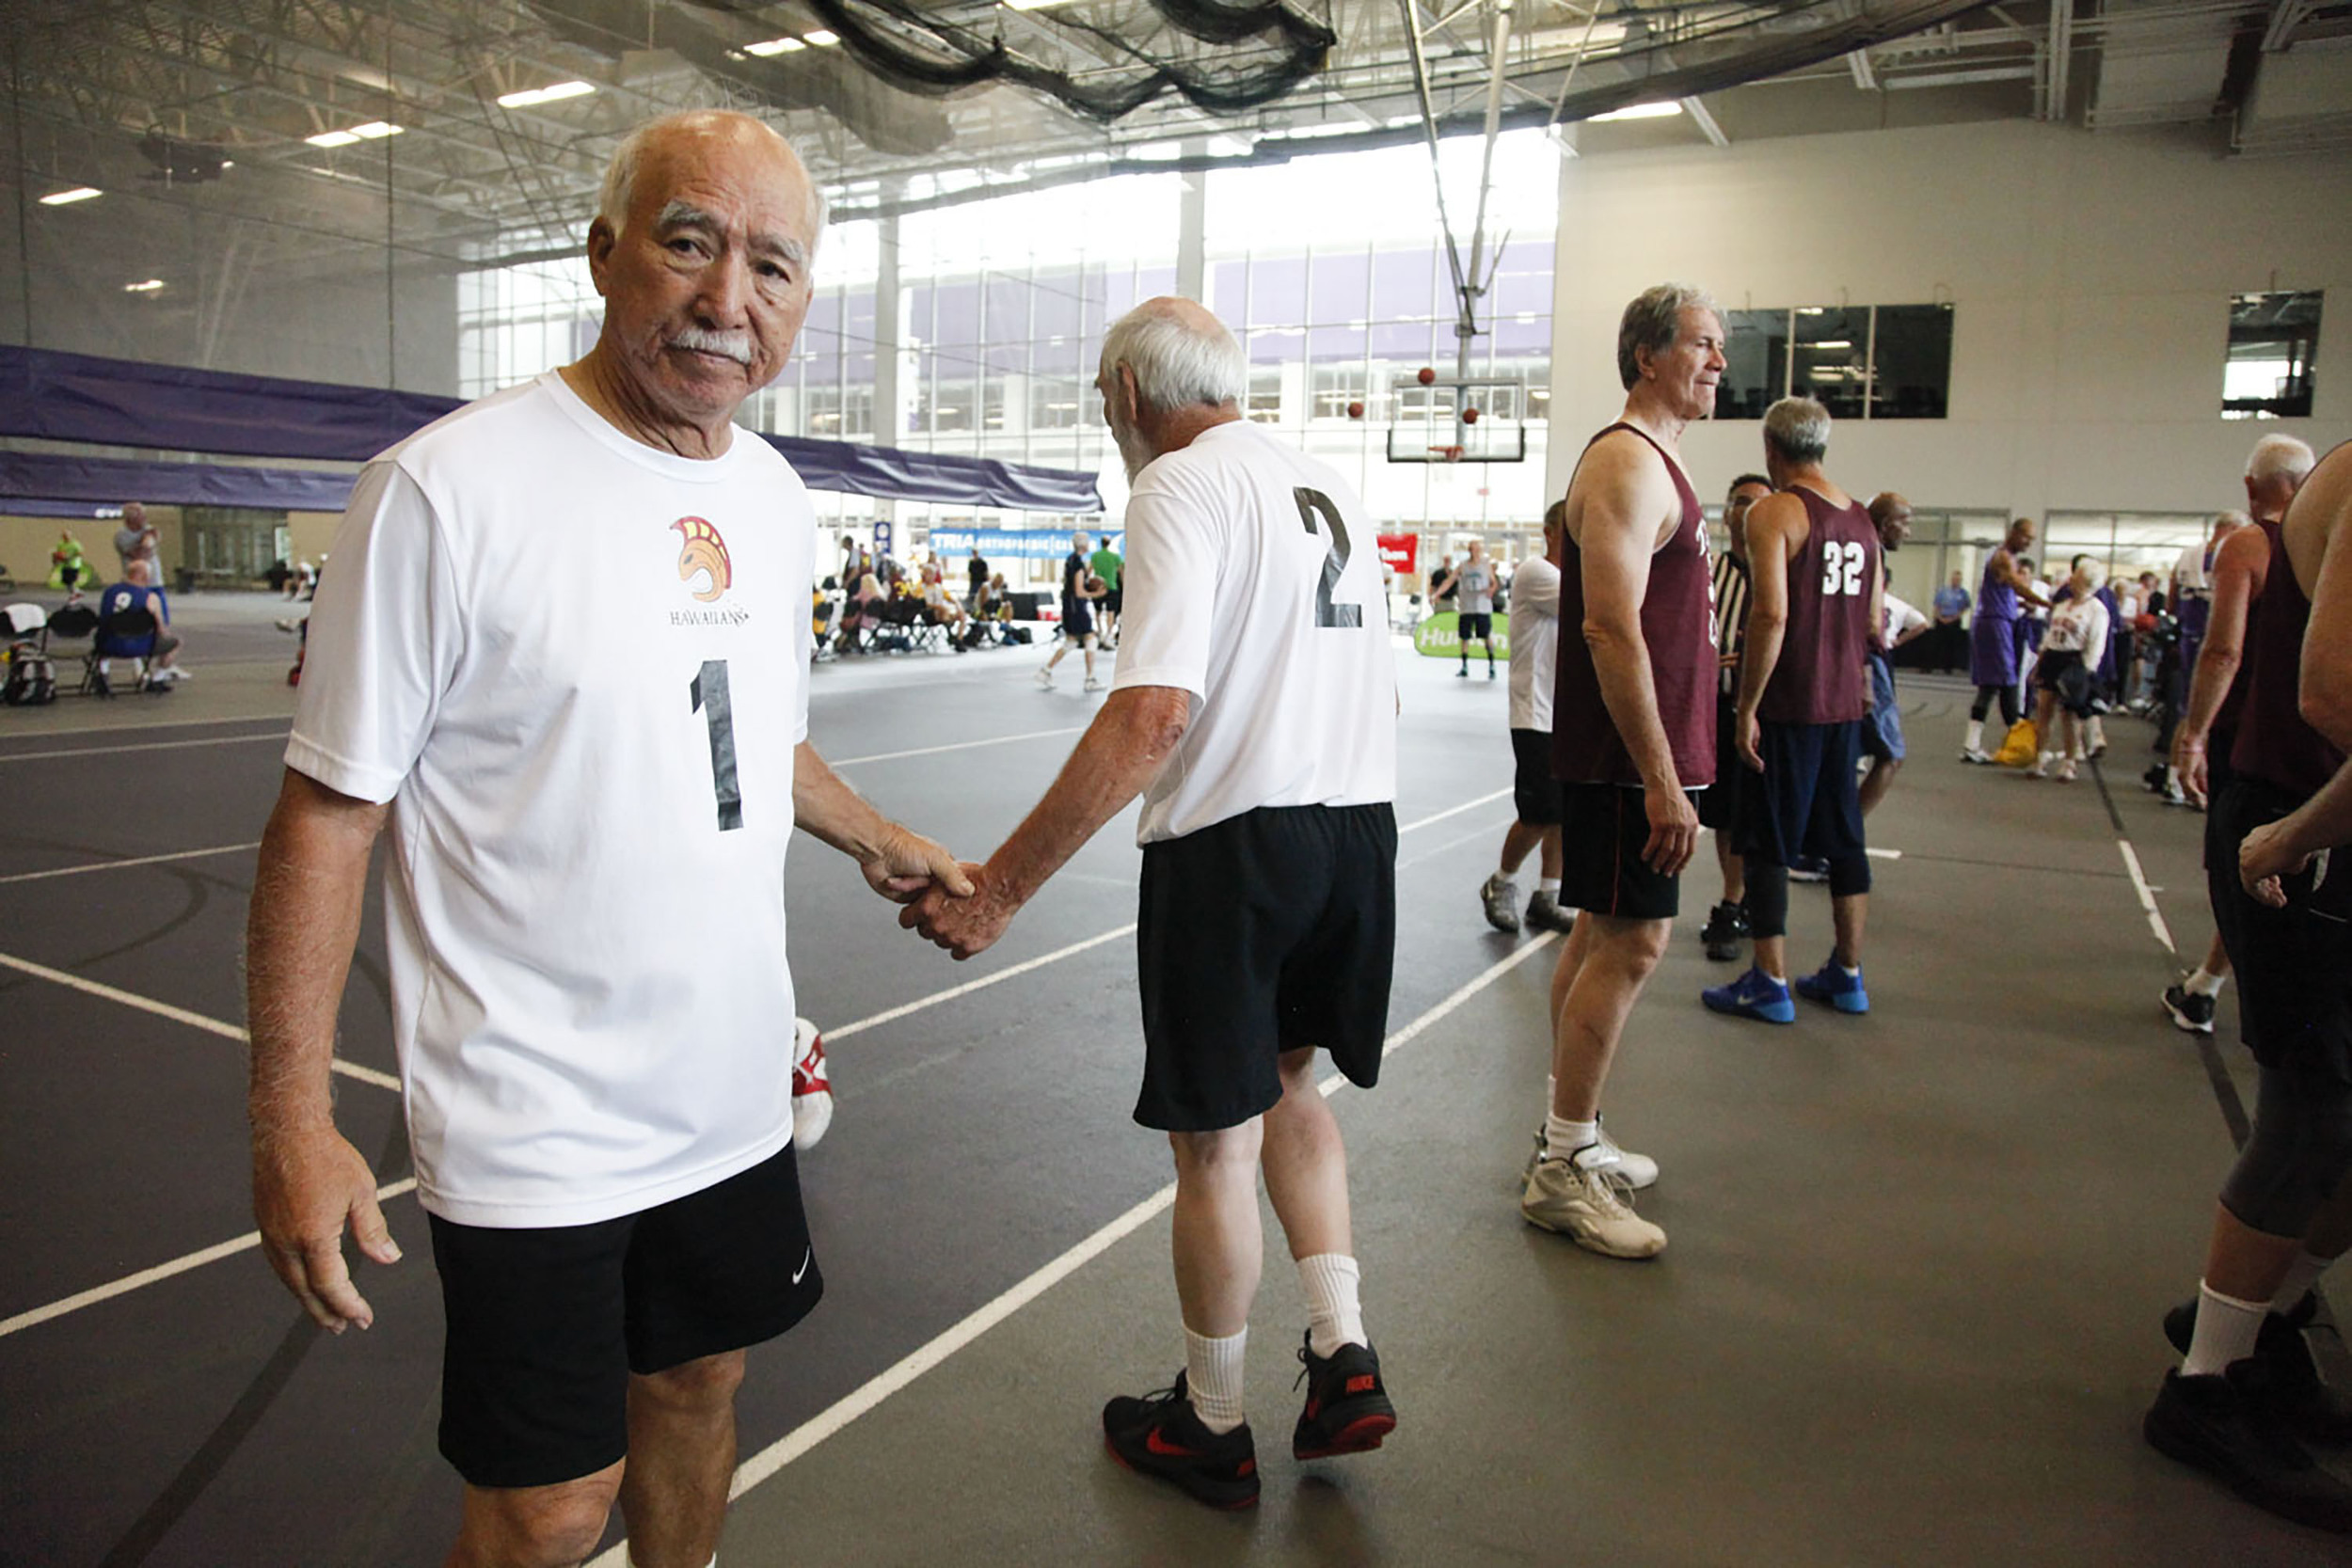 Wayne Kihune (left) and Jerry Schletzbaum (right) of the Hawaiians shake hands after a game against Taylor Law during the National Senior Games basketball competition. This competition took place at the St. Thomas University Basketball Court in St. Paul, MN. on Jul. 9, 2015.